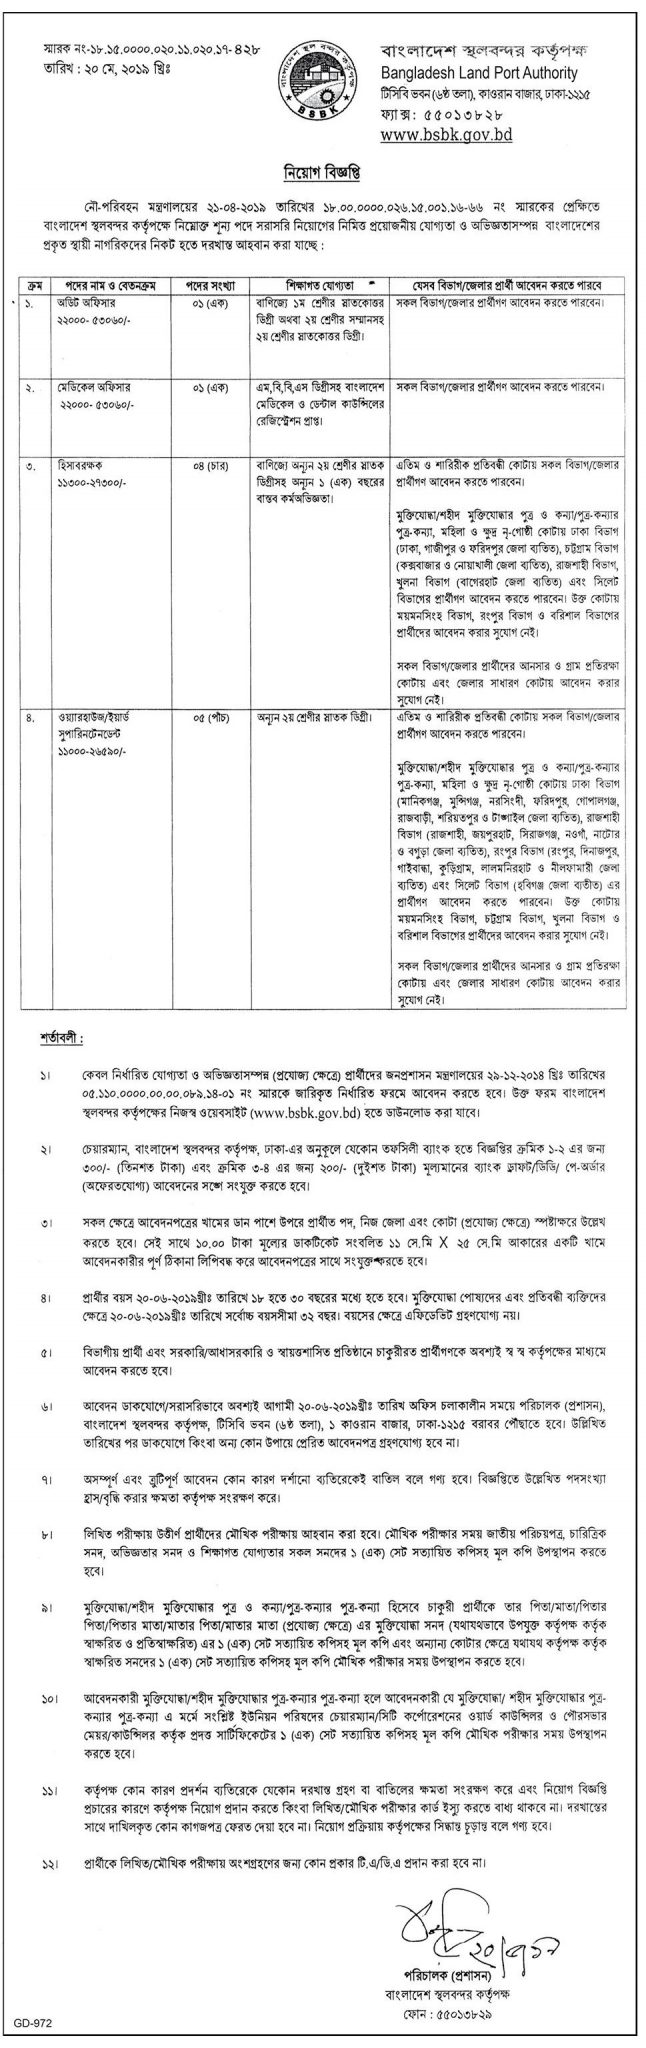 Bangladesh Land Port Authority Job Circular 2019